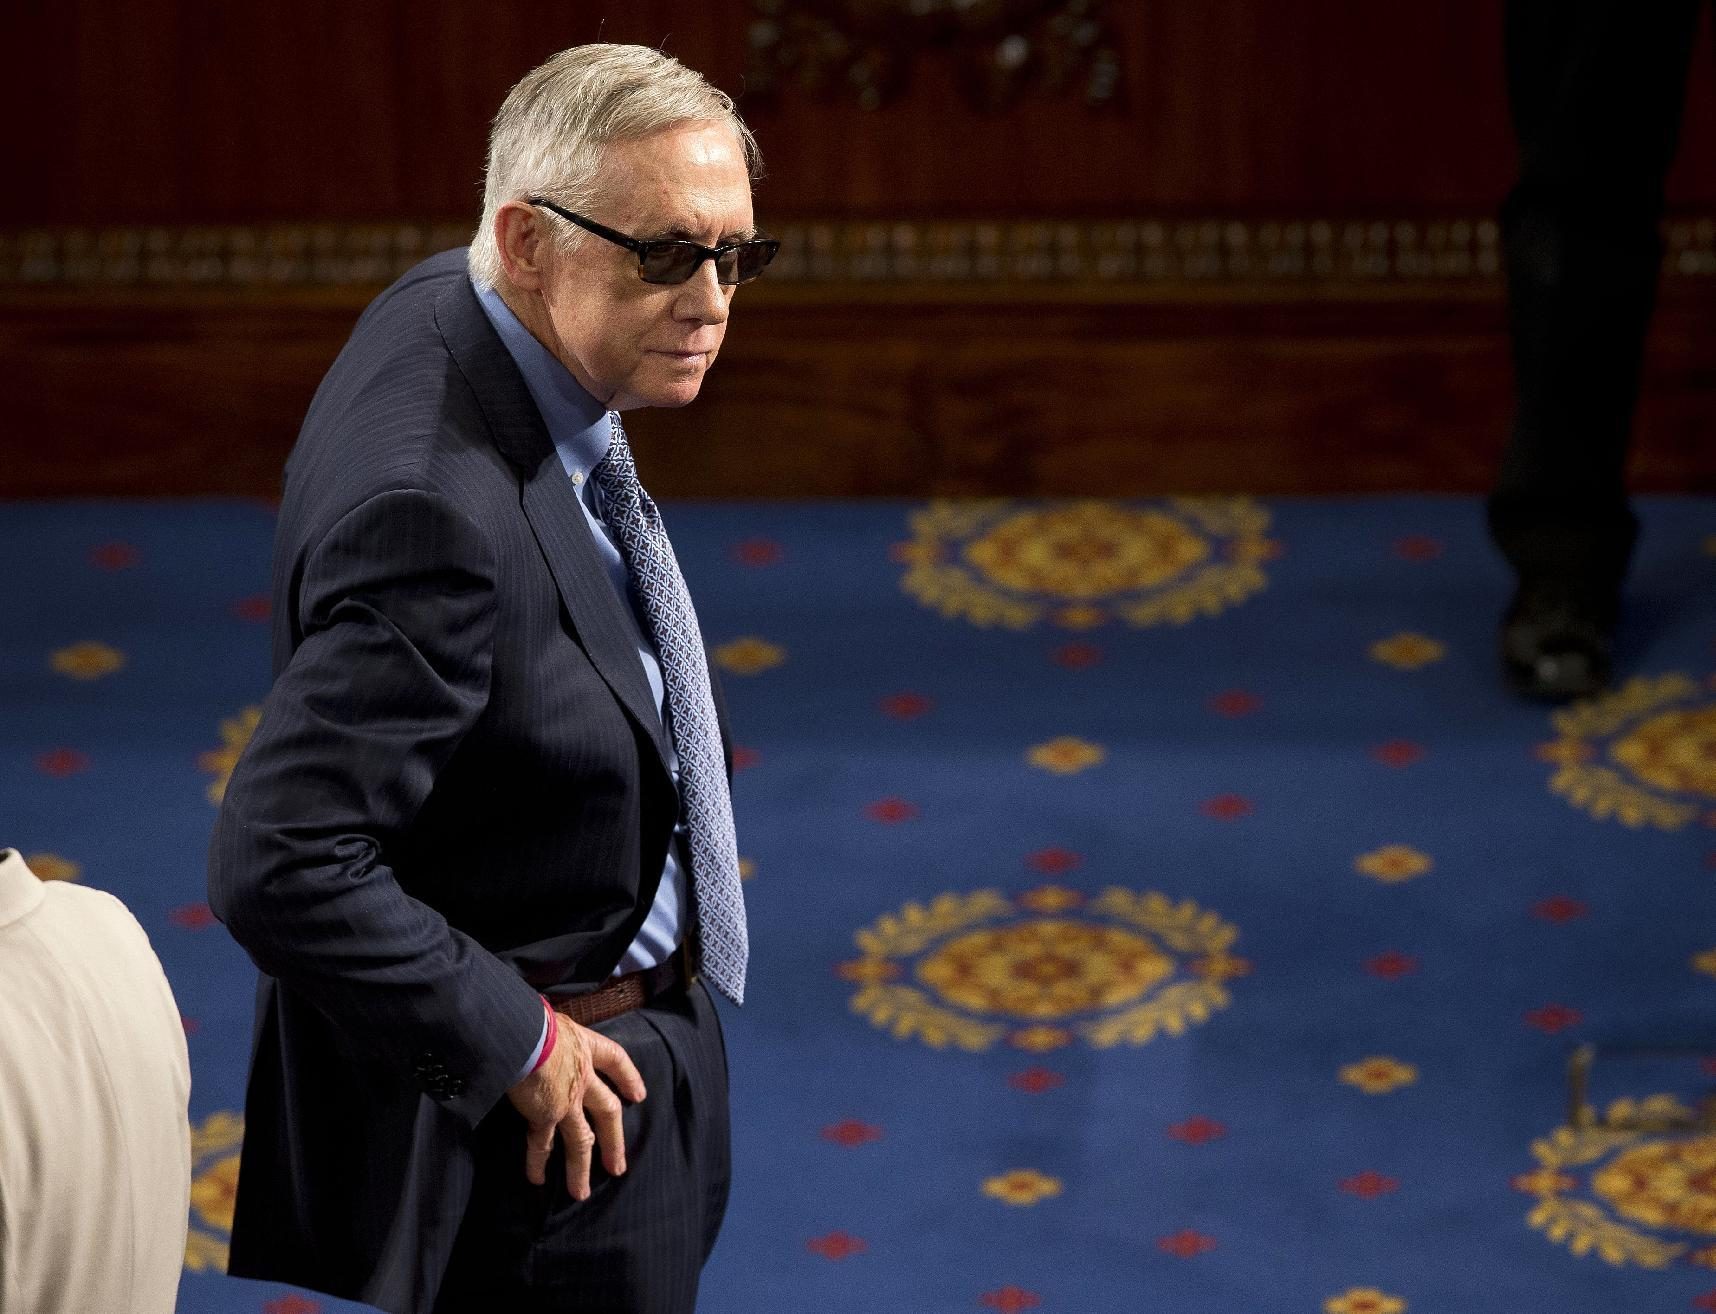 Harry Reid retiring: Democrats who could replace him